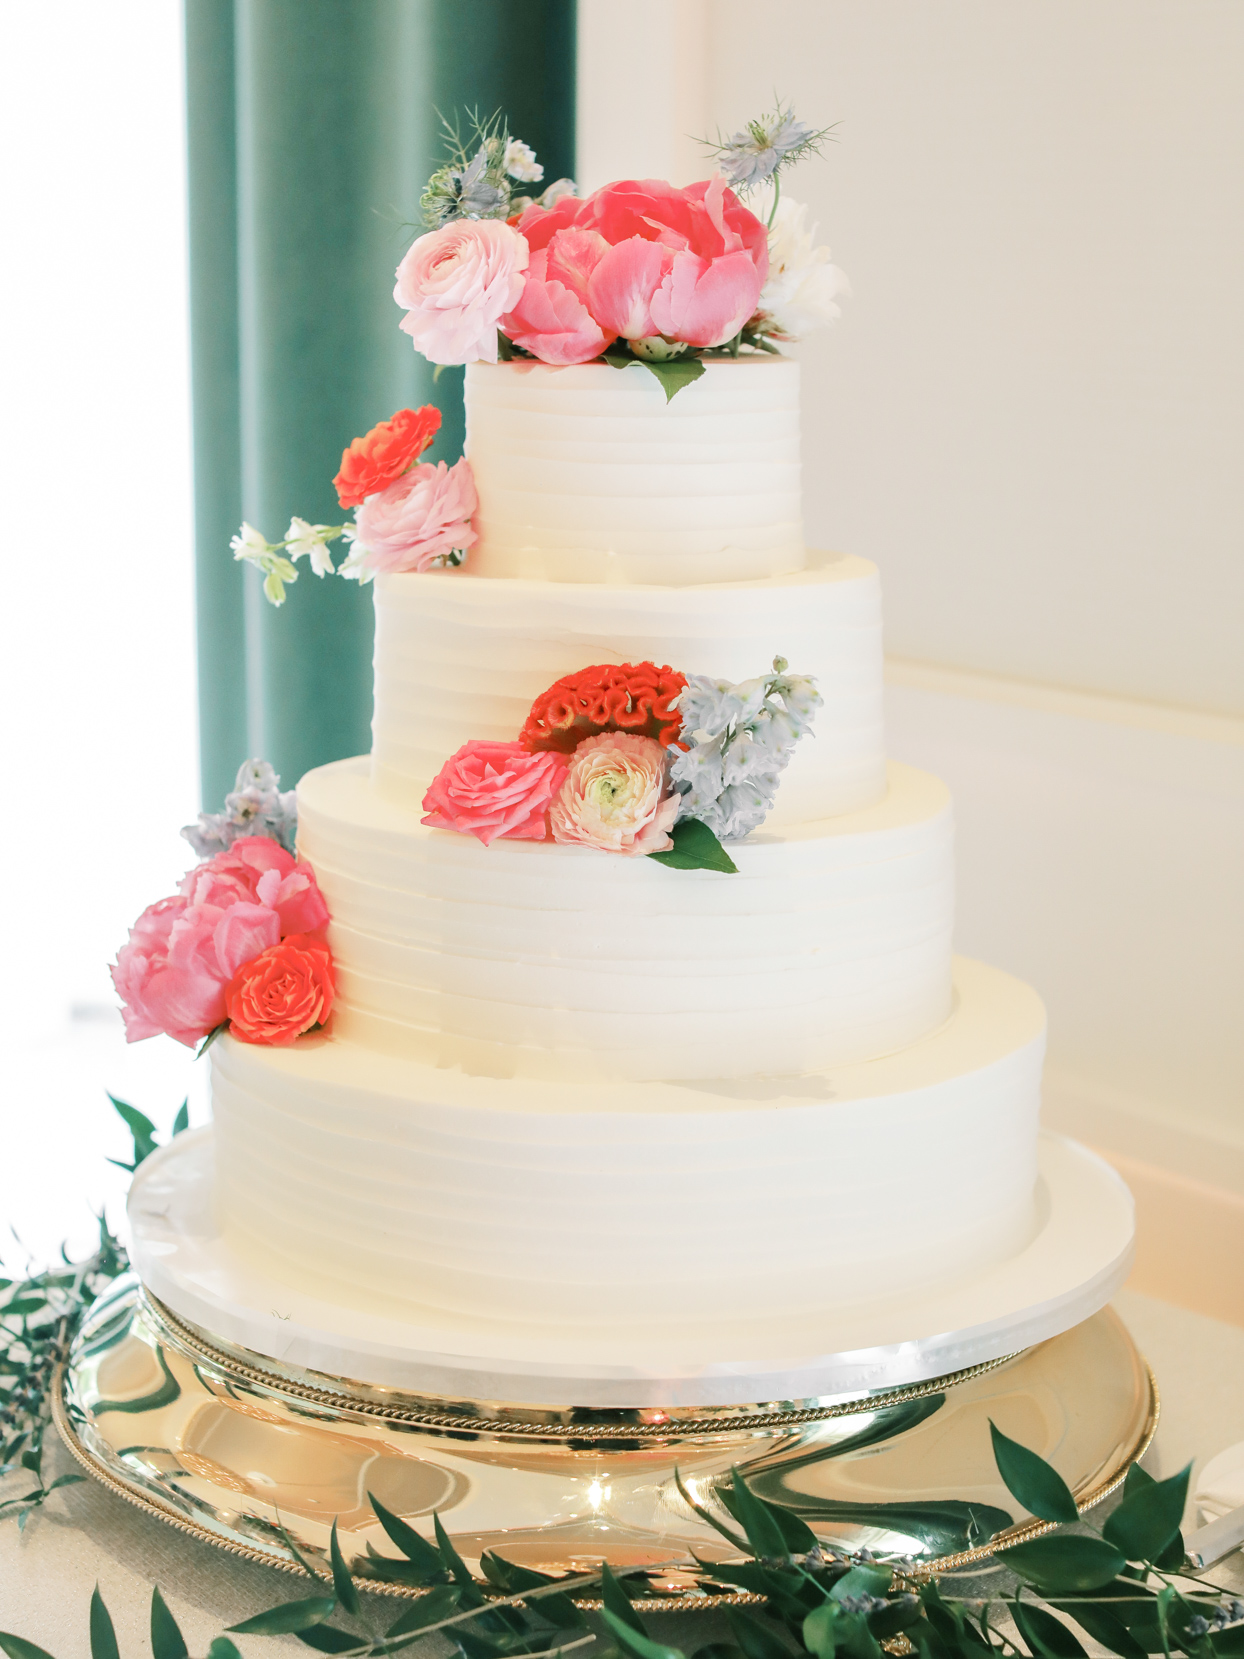 A four-tier cappuccino torte cake with peonies